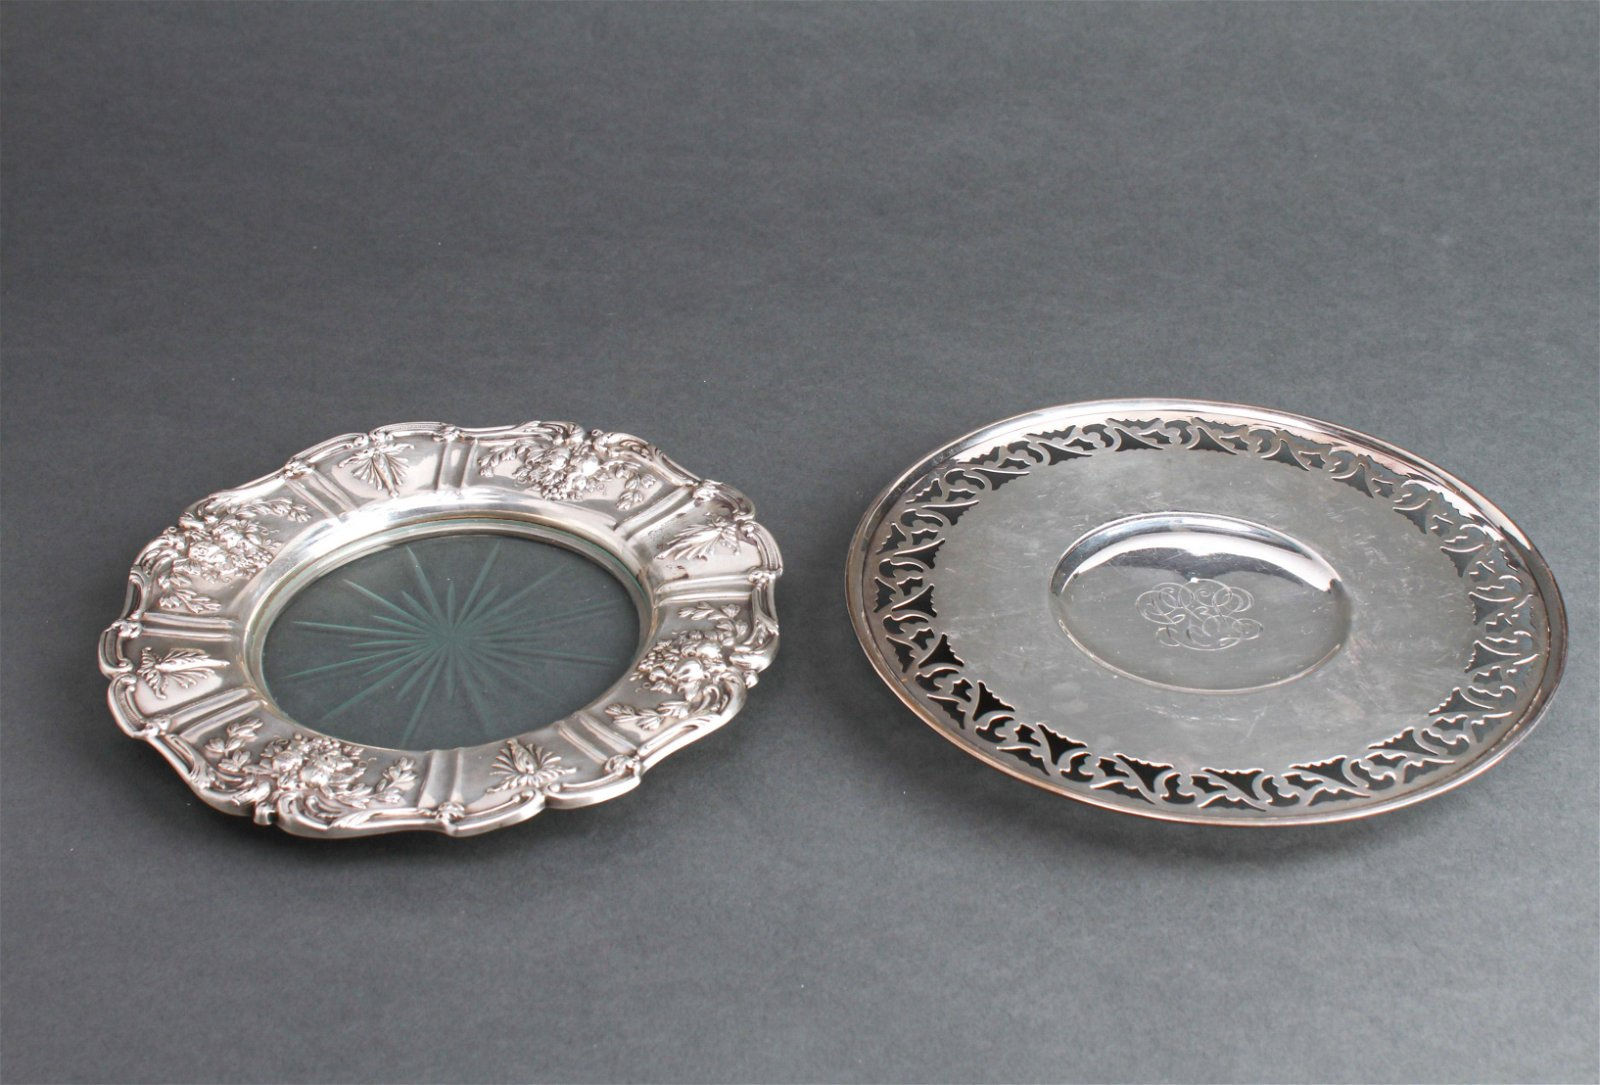 Sterling Silver Round Trays incl Reed & Barton, 2